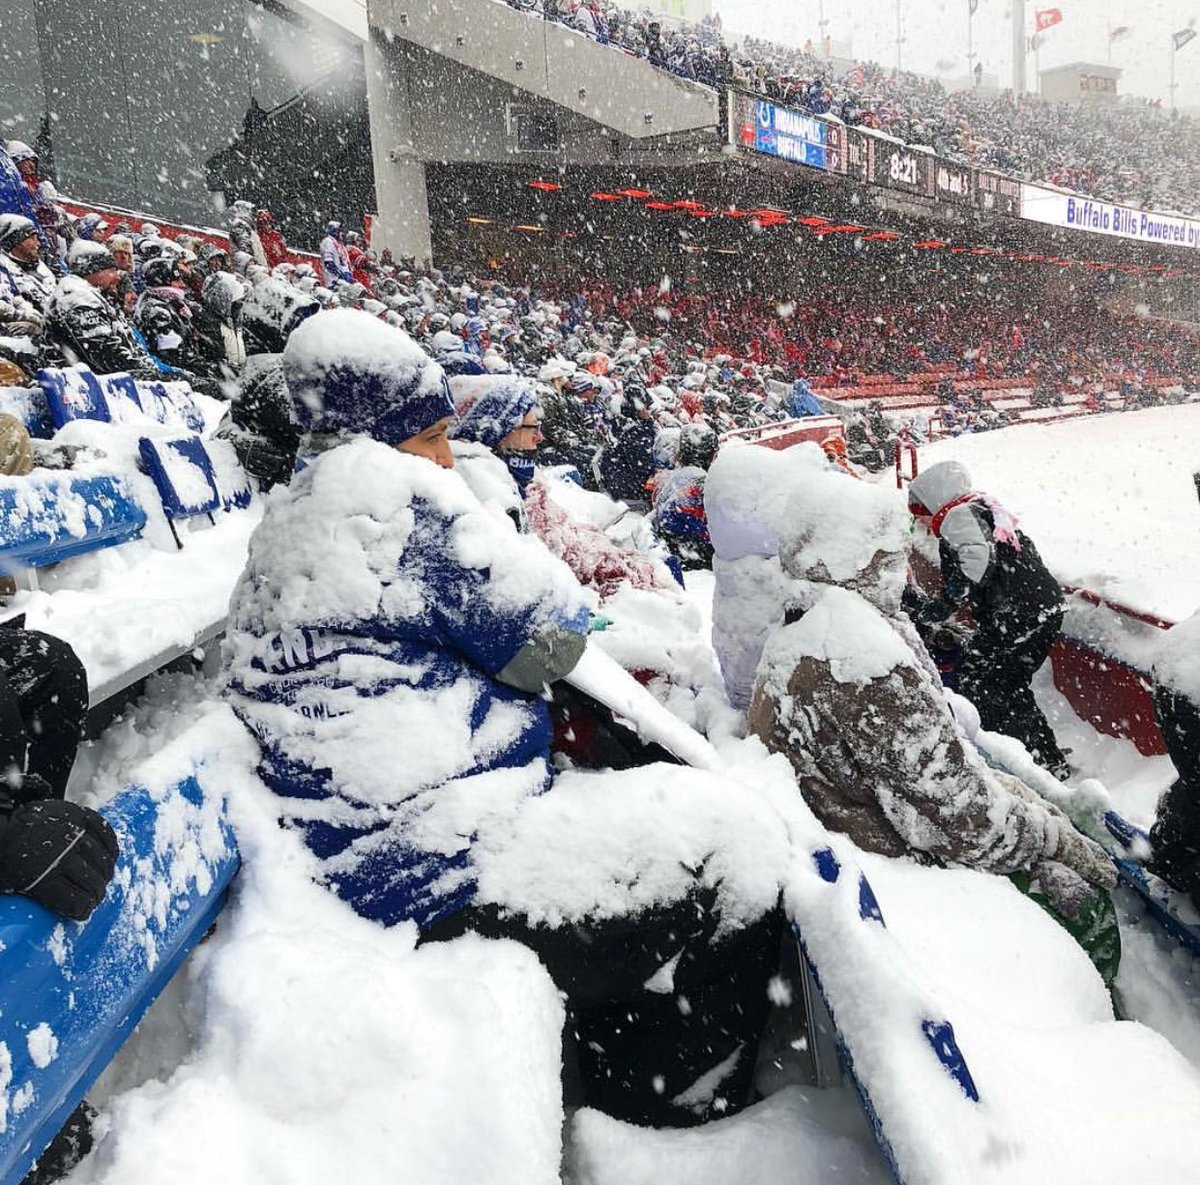 Next time you complain about being cold at a Scottish football game, just think of the Buffalo Bills fans today. https://t.co/2cPTRxk6OS